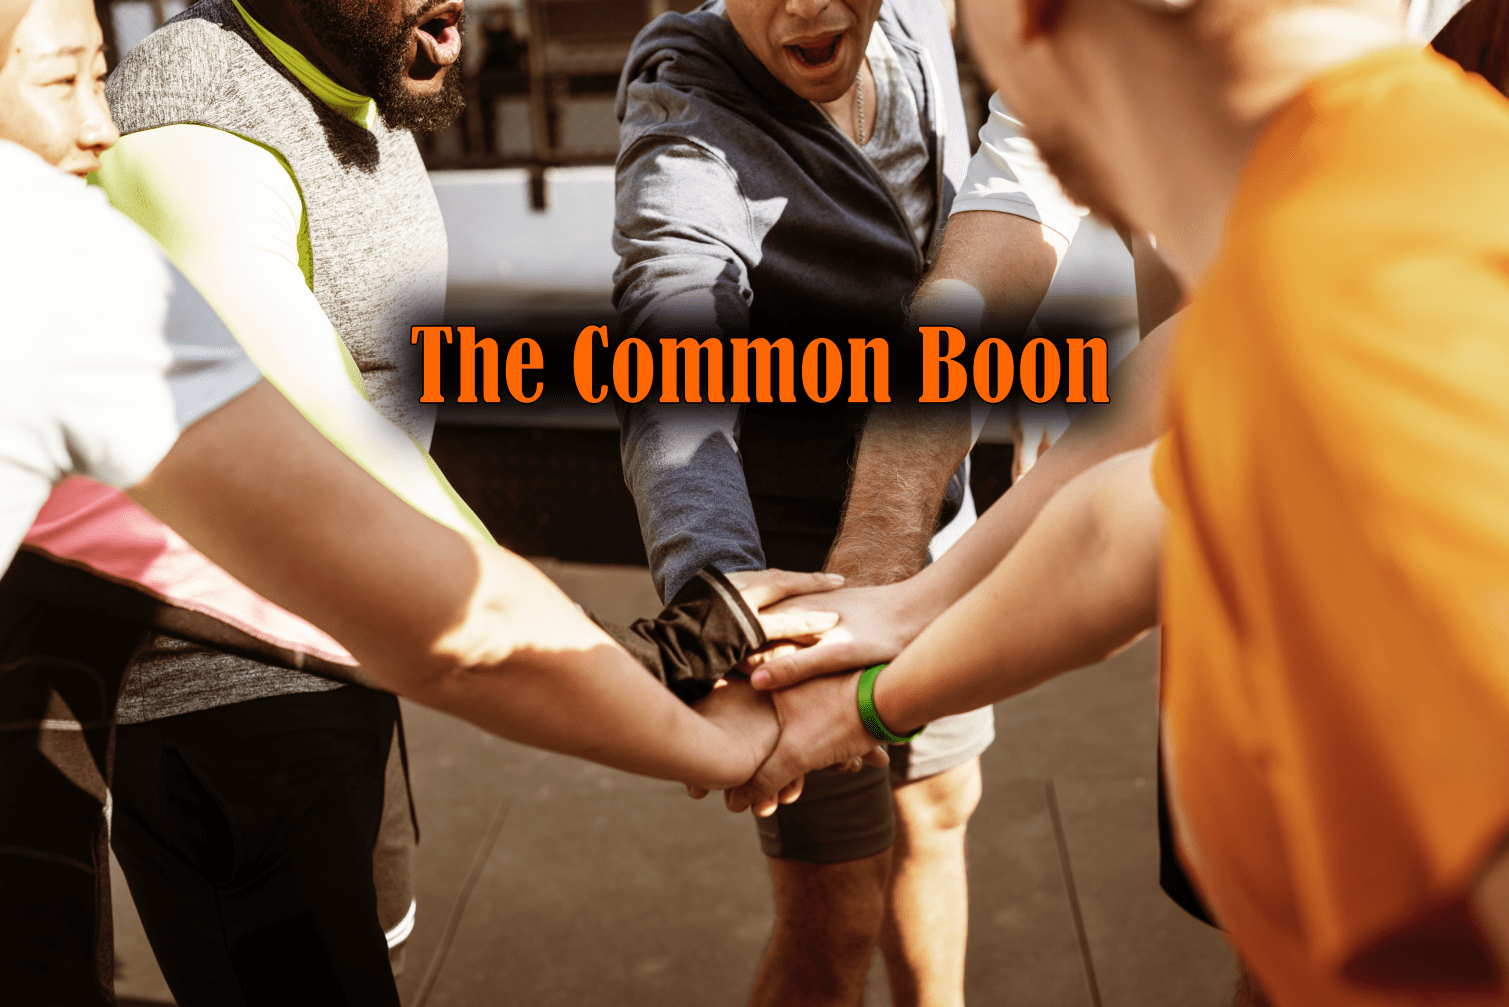 The Common Boon